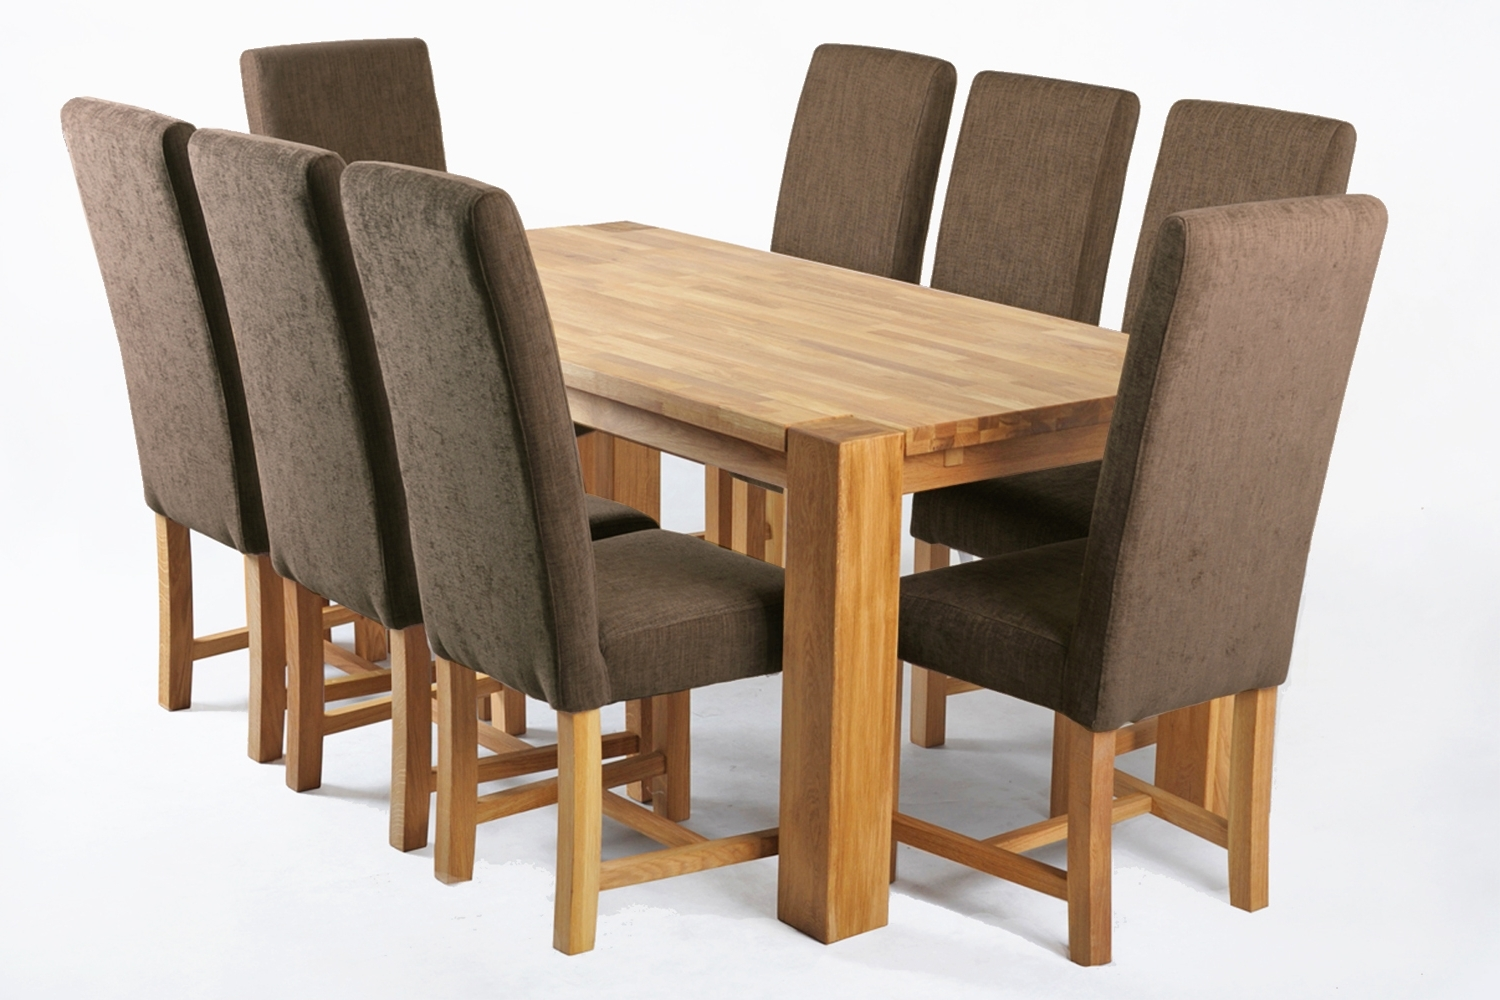 Oak Fabric Dining Chairs With 2018 Kensington Fabric Dining Chair With Massive Oak Legs Nut White (View 2 of 25)